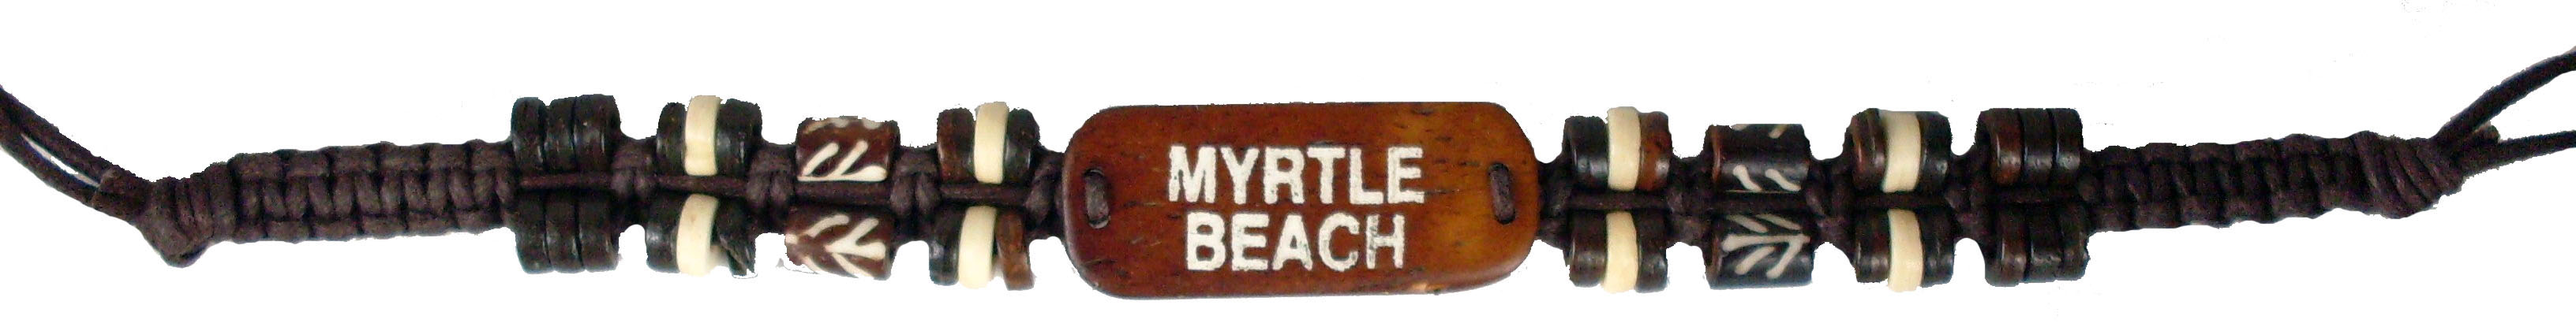 Handmade Bone Name Drop Bracelet Myrtle Beach